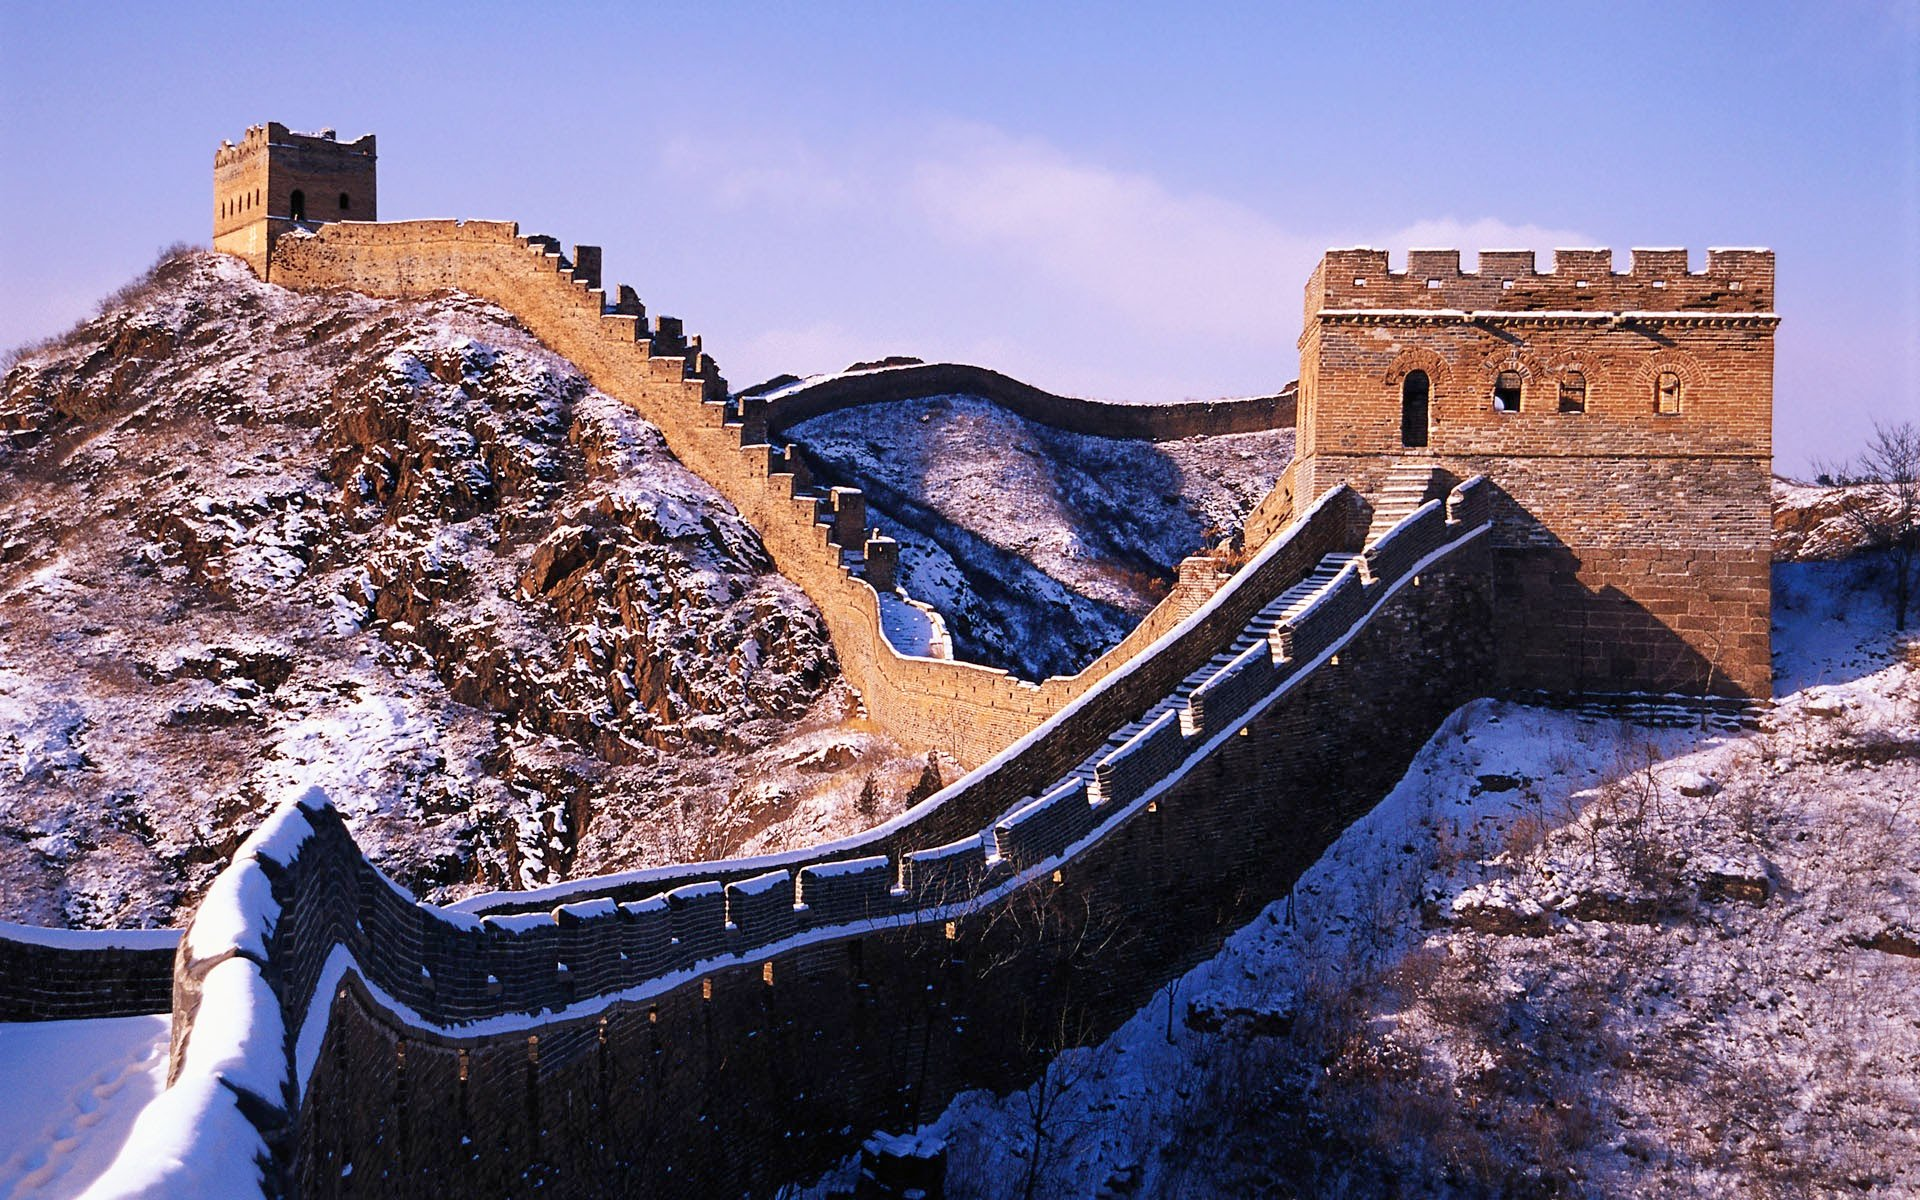 Snow on the Great Wall